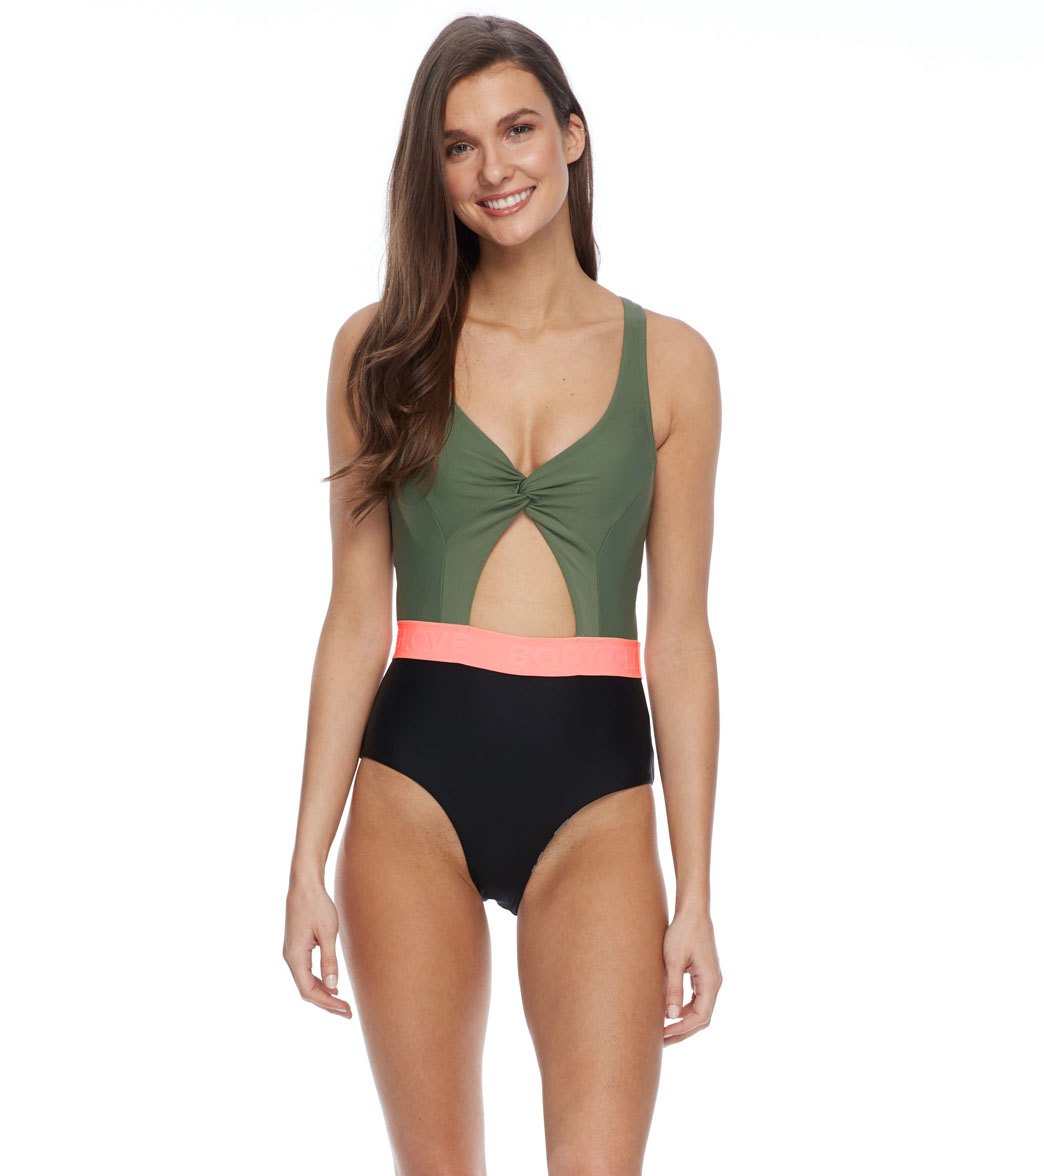 Body Glove Kid On The Block Pearl One Piece Swimsuit